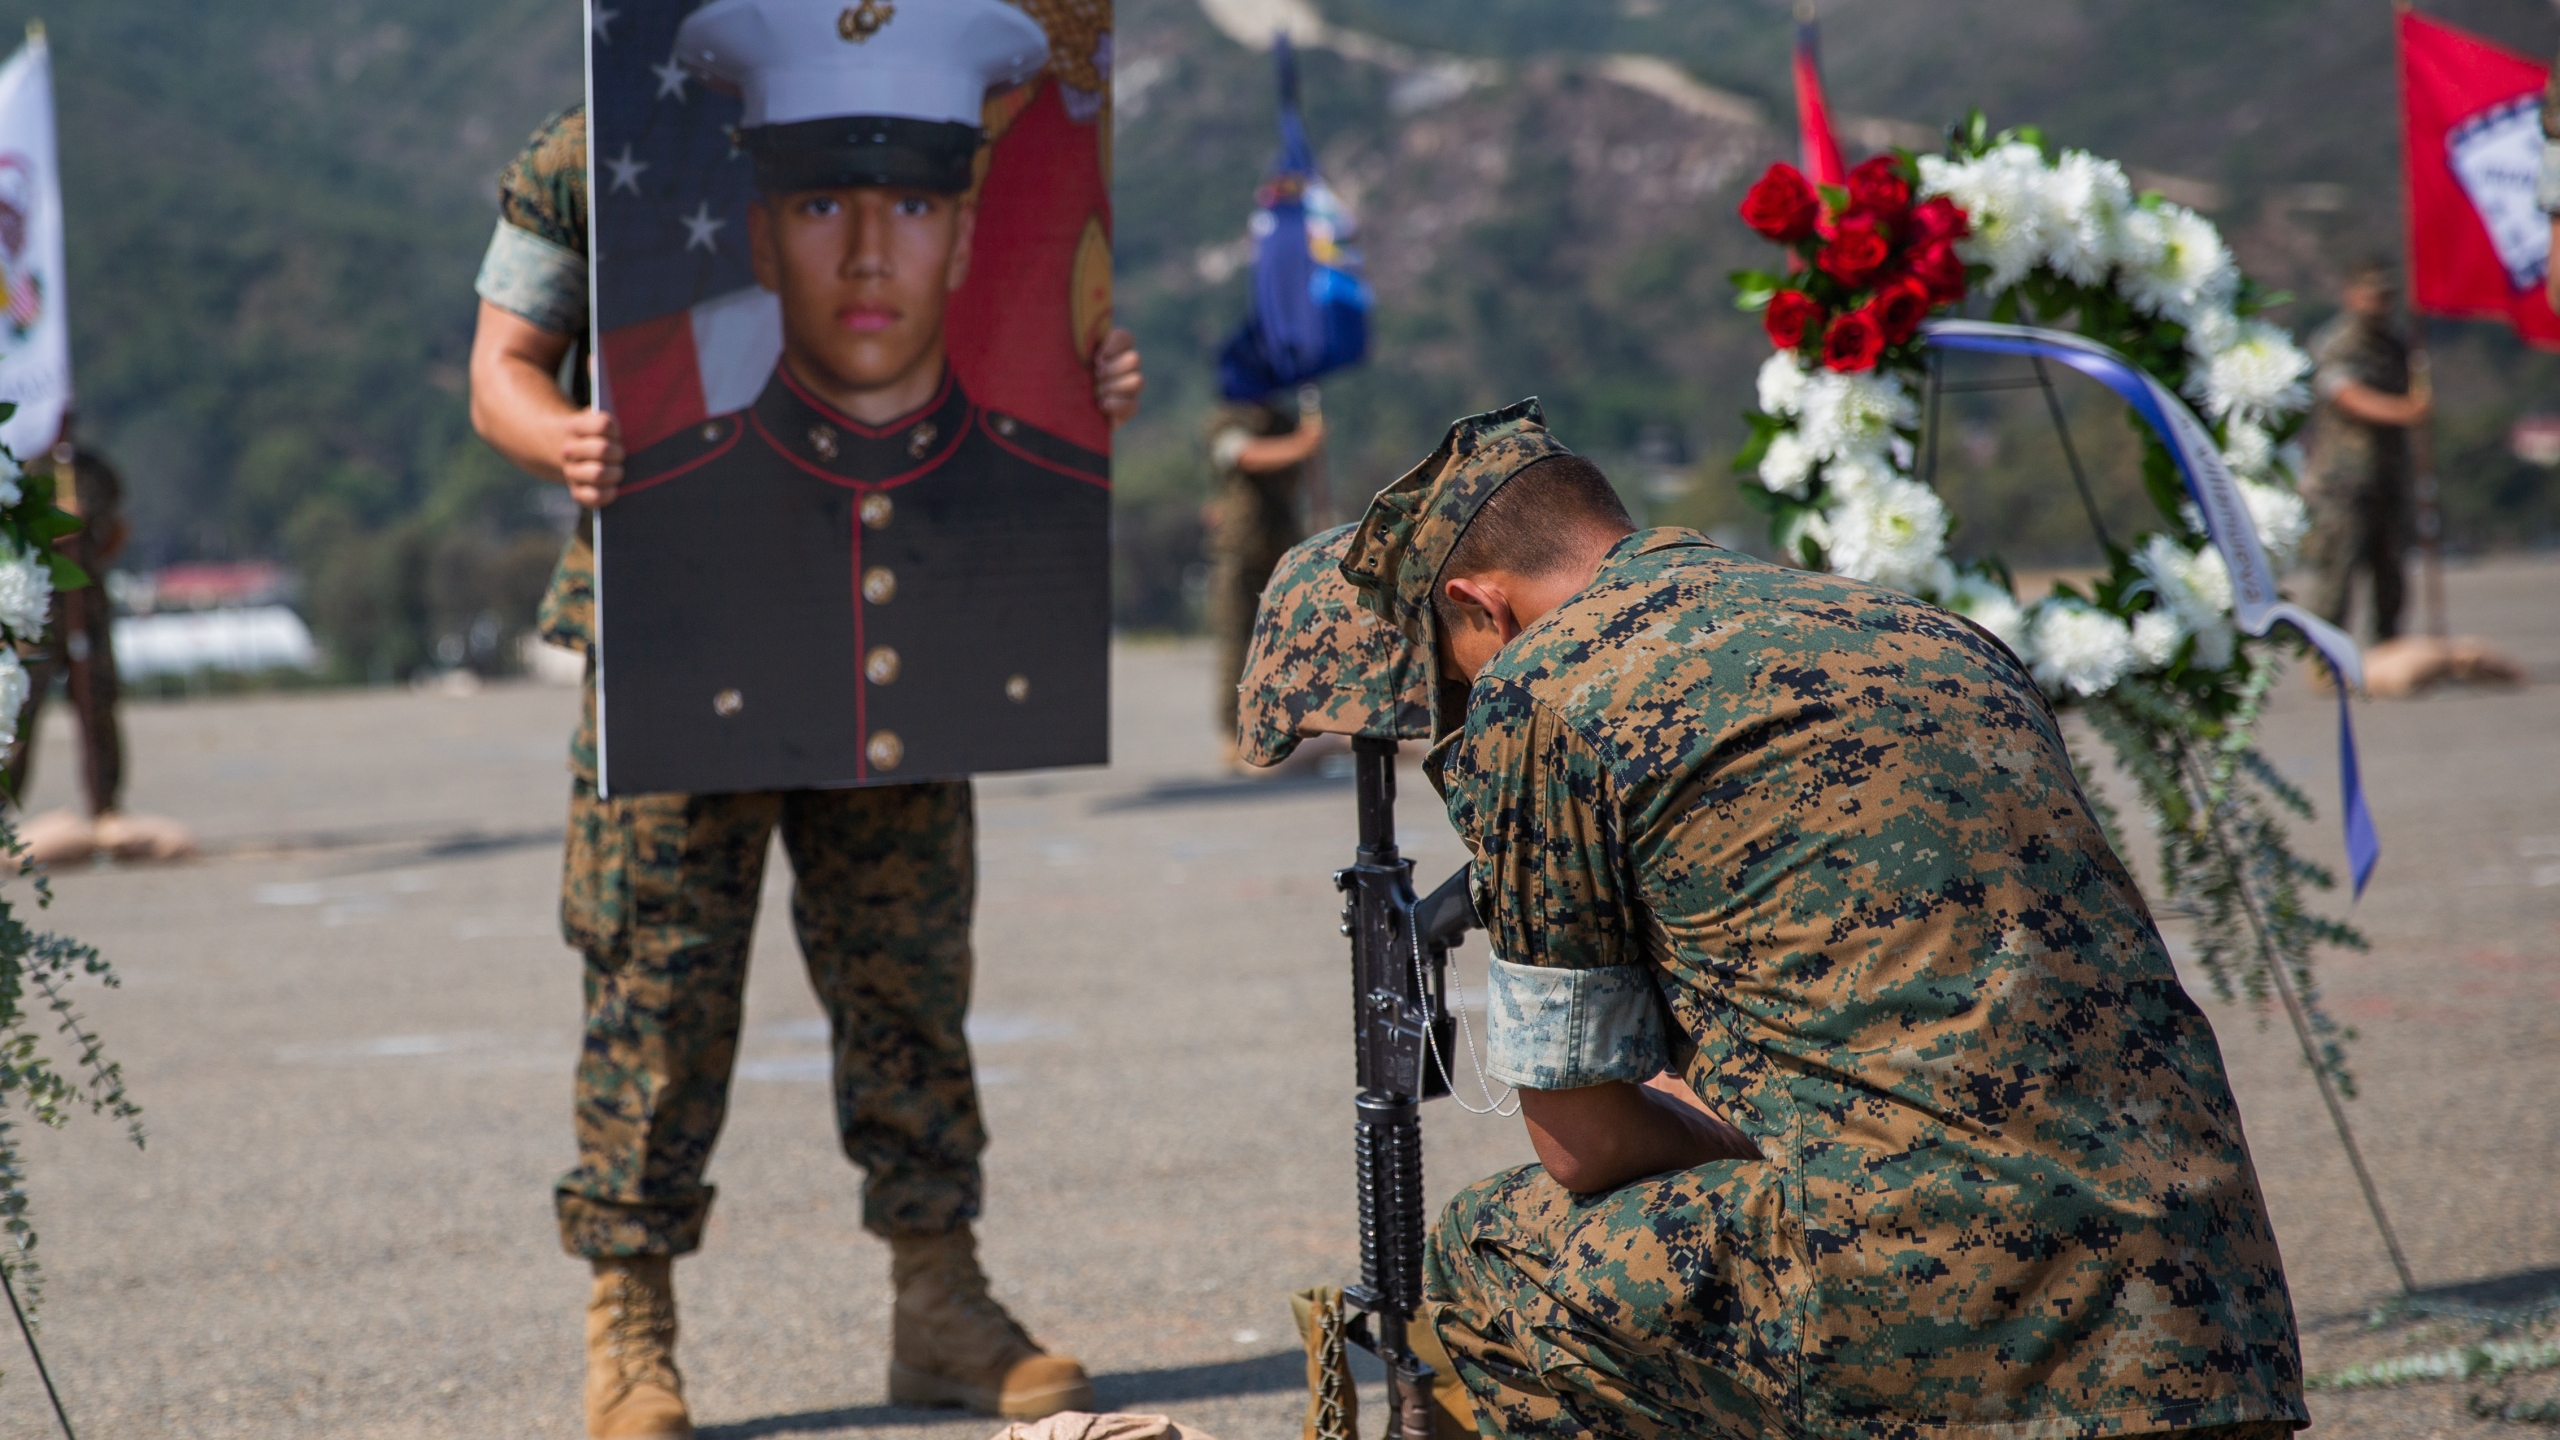 A U.S. Marine takes a knee to honor the fallen after a memorial service at Marine Corps Base Camp Pendleton, California, Aug. 21, 2020. The service was held in remembrance of the eight Marines and one Sailor from Bravo Company, Battalion Landing Team 1/4, 15th Marine Expeditionary Unit, who died in an assault amphibious vehicle mishap off the coast of San Clemente Island, California, July 30. (U.S. Marine Corps photo by Cpl. Jennessa Davey)